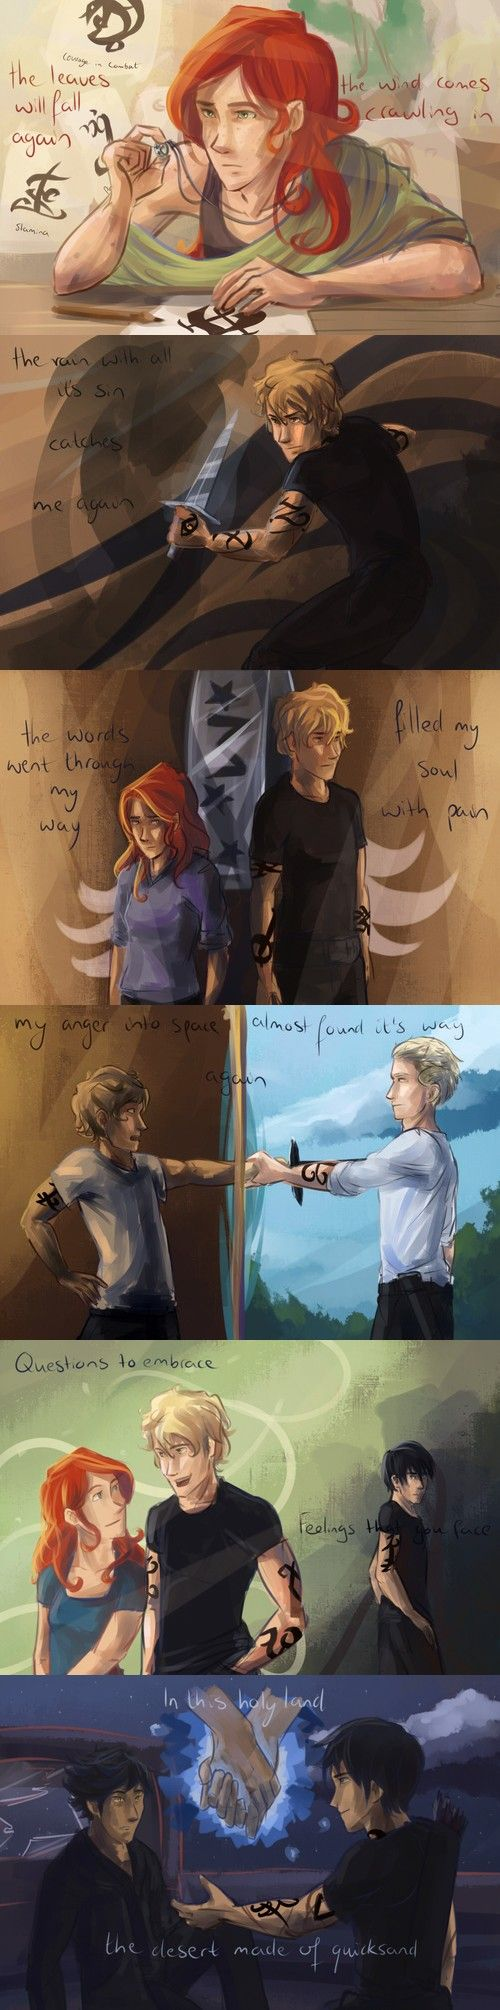 The Great Escape, picture 1. The Mortal Instruments: City of Bones, City of Ashes